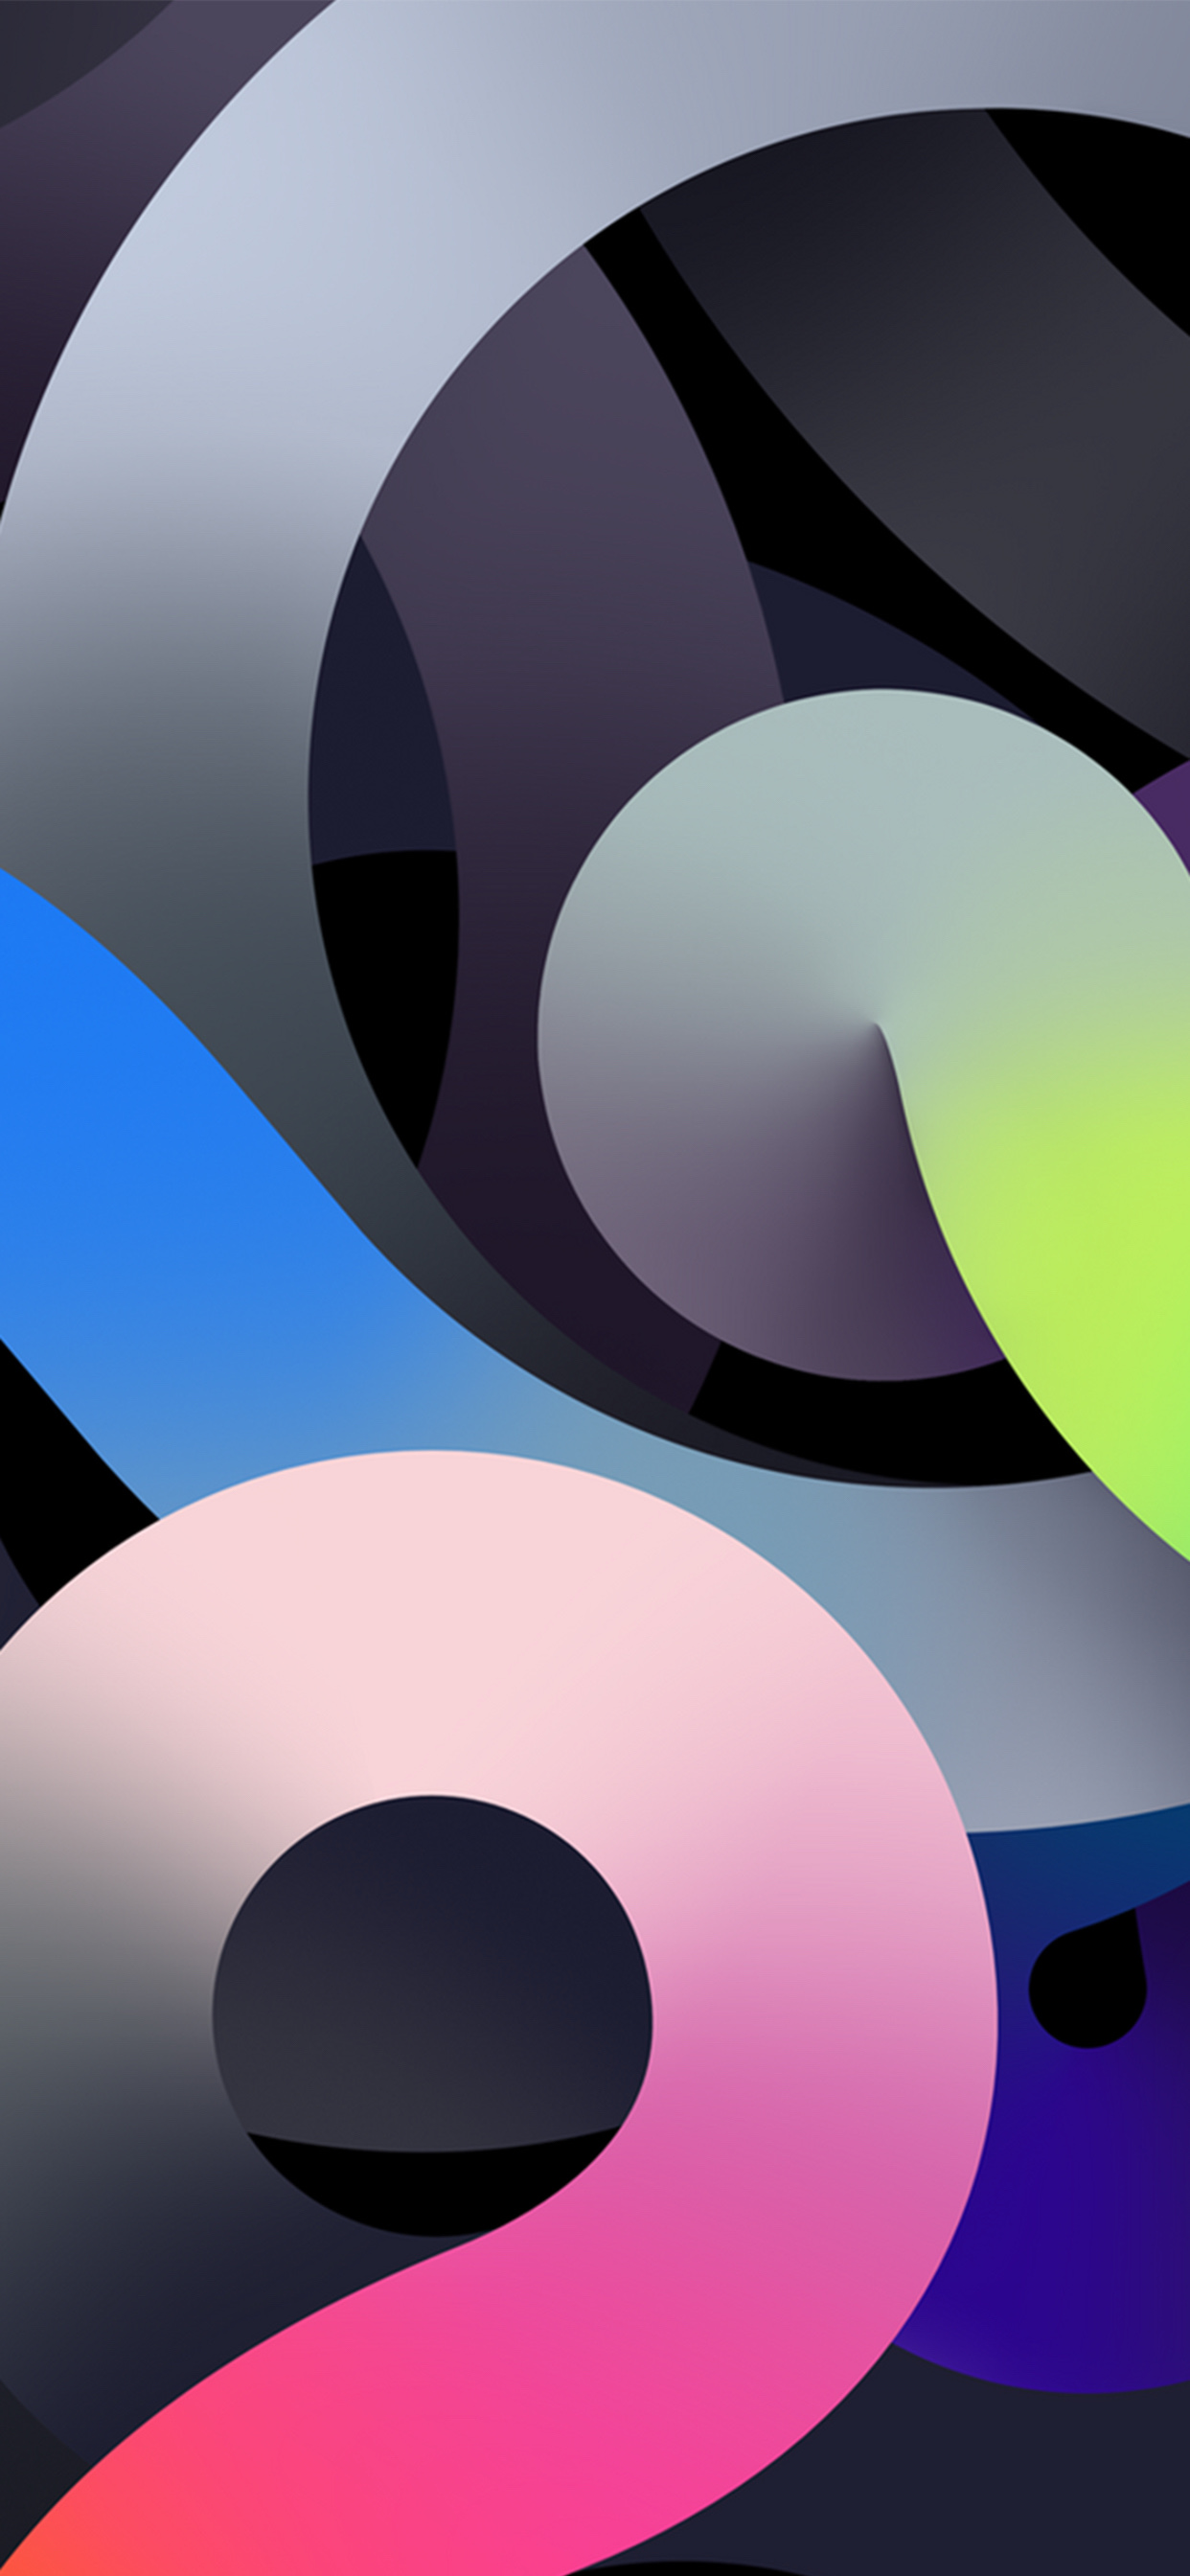 iPhone iPad and desktop wallpapers inspired by the new iPad Air 1242x2688